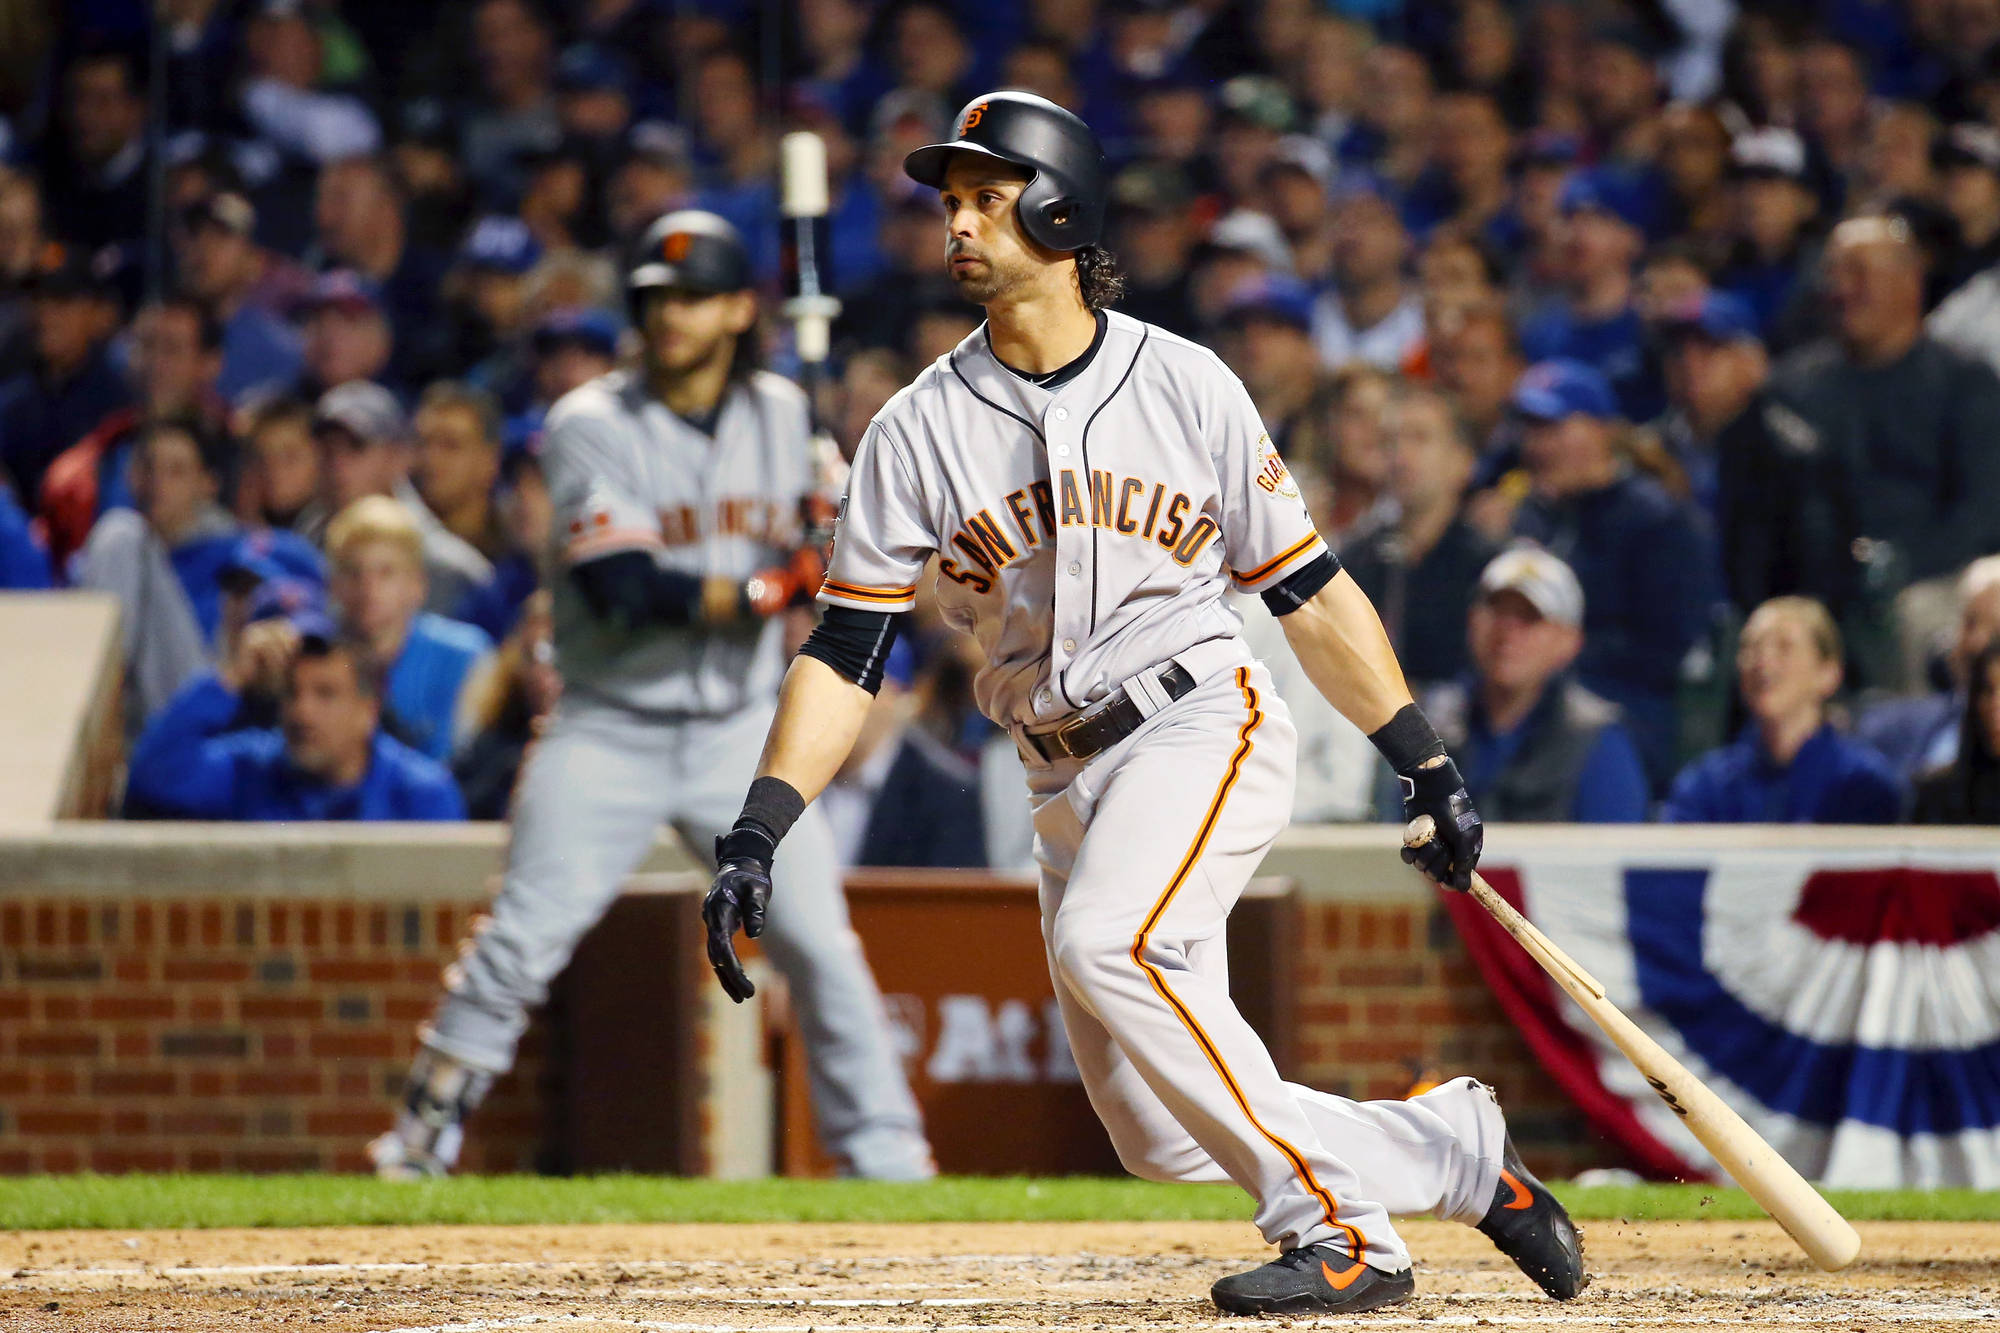 Should the Orioles sign Angel Pagan?